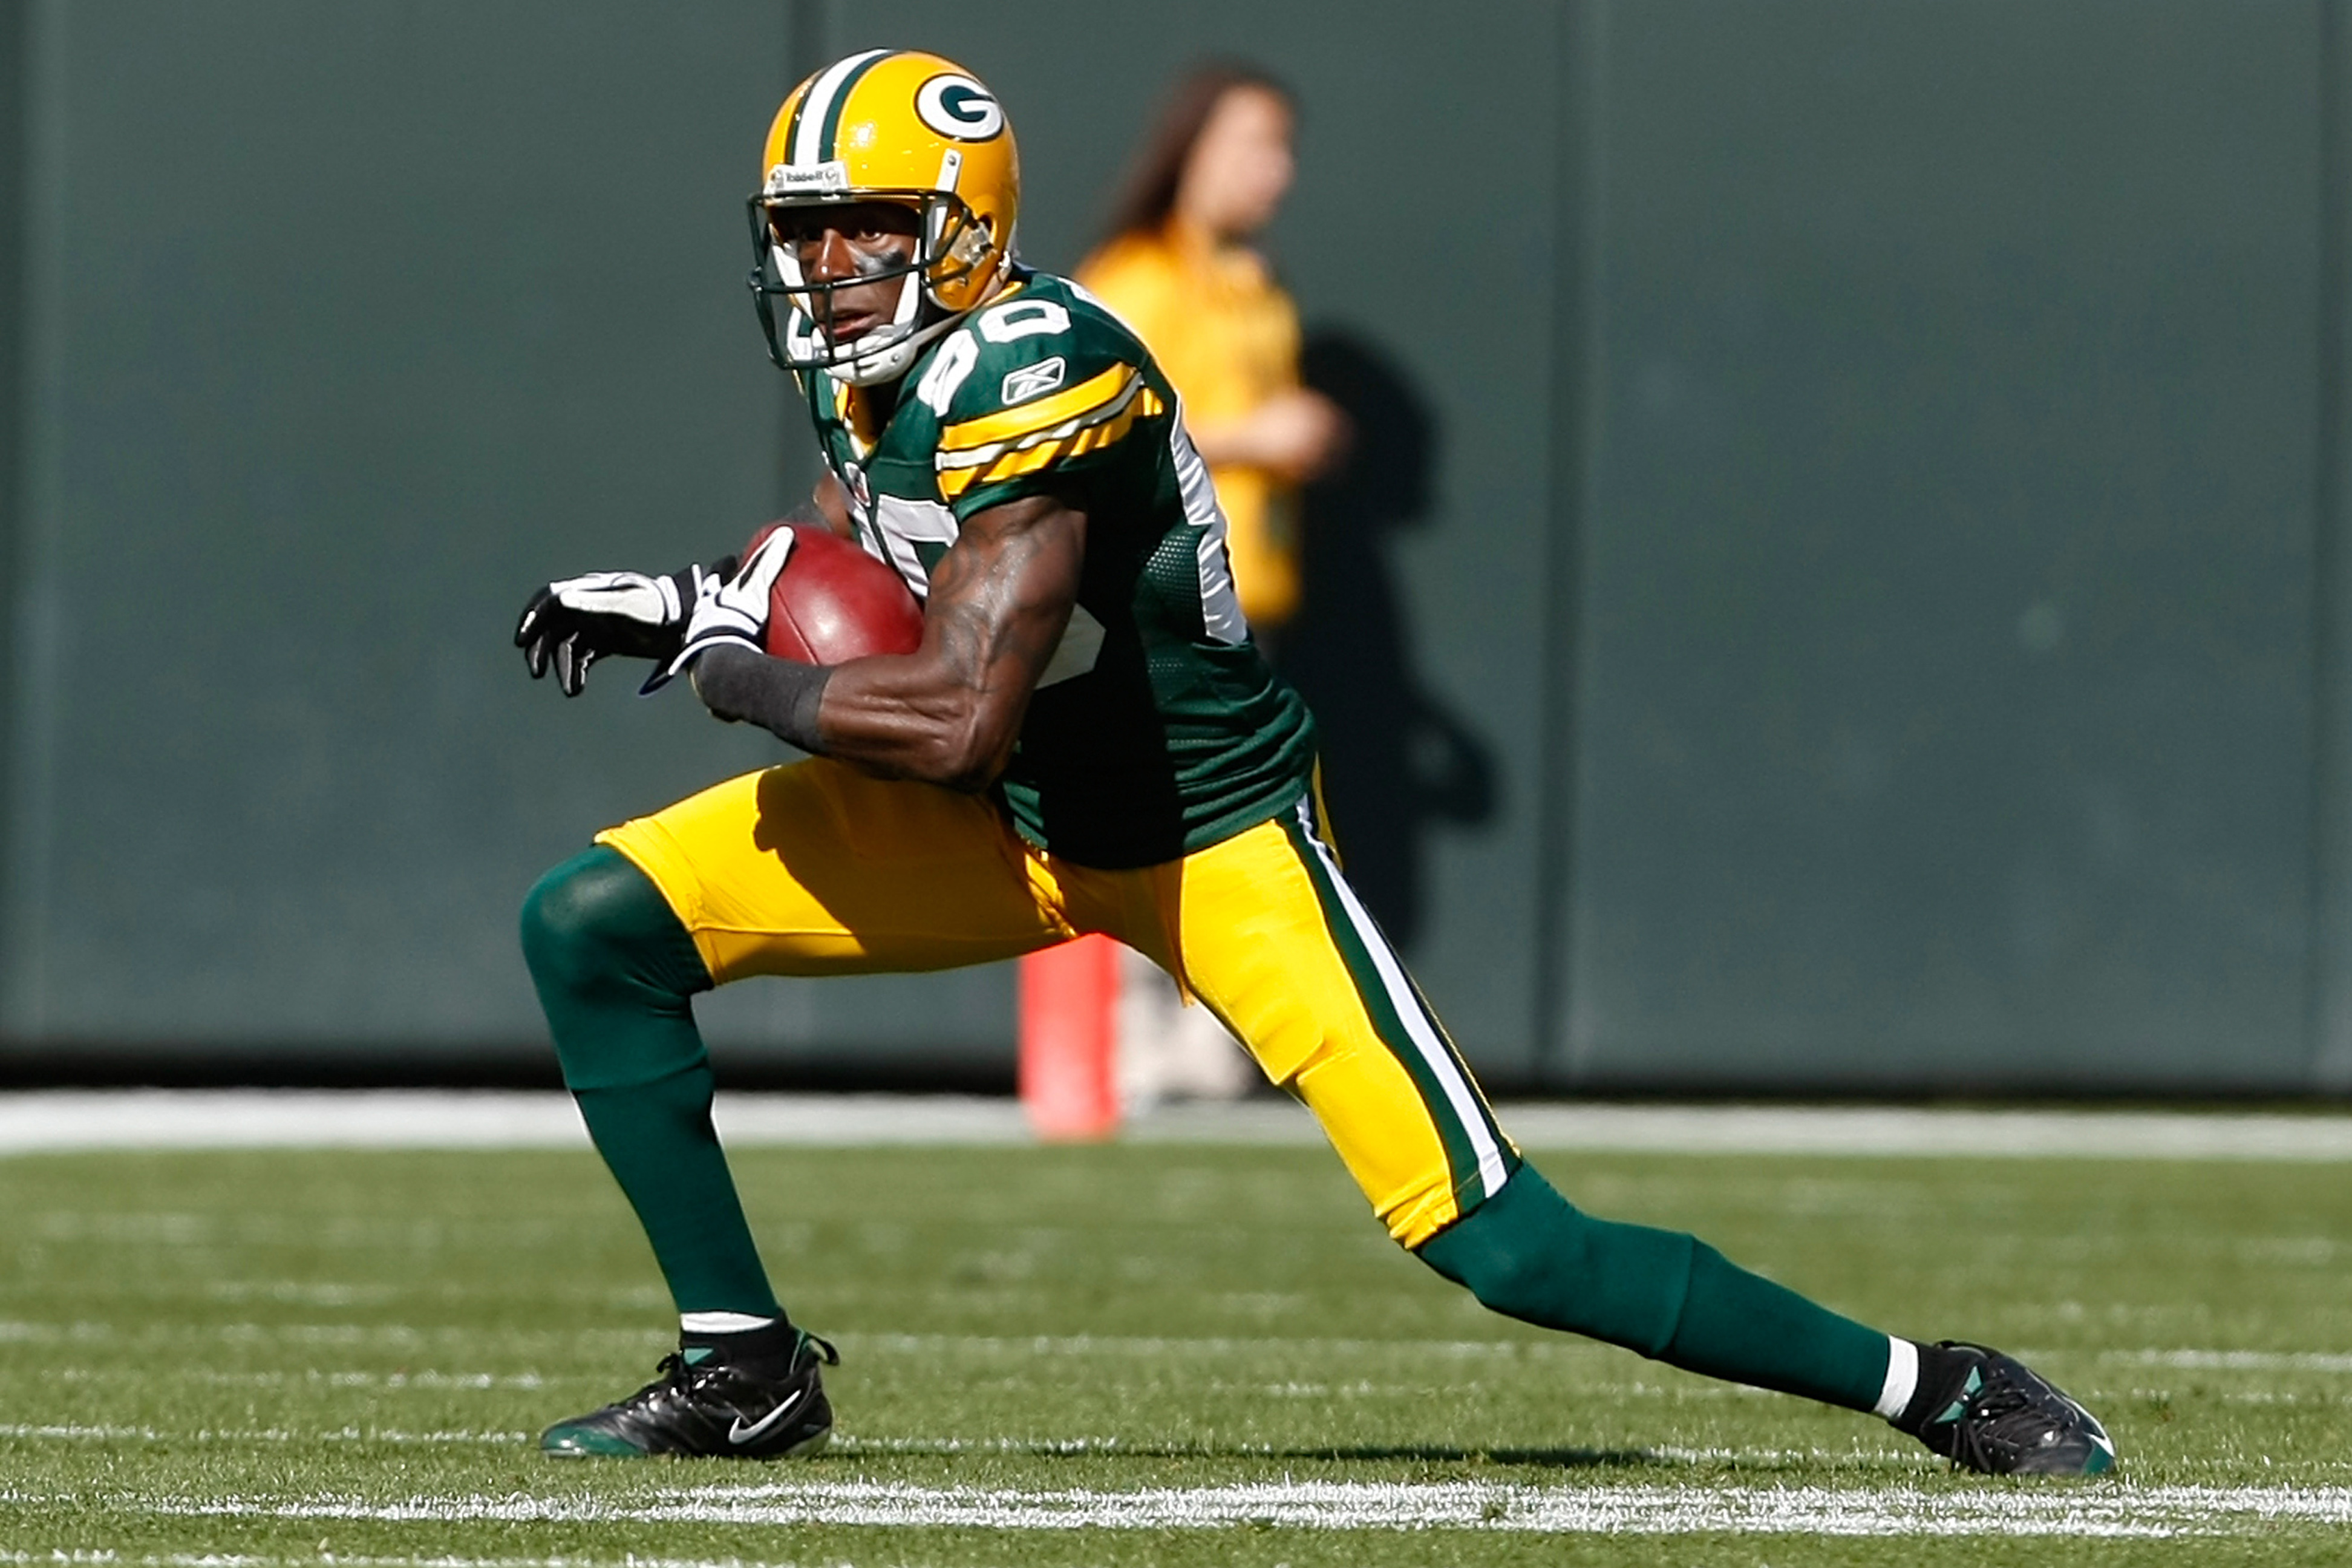 GREEN BAY, WI - OCTOBER 17: Donald Driver #80 of the Green Bay Packers runs against the Miami Dolphins at Lambeau Field on October 17, 2010 in Green Bay, Wisconsin. (Photo by Scott Boehm/Getty Images)